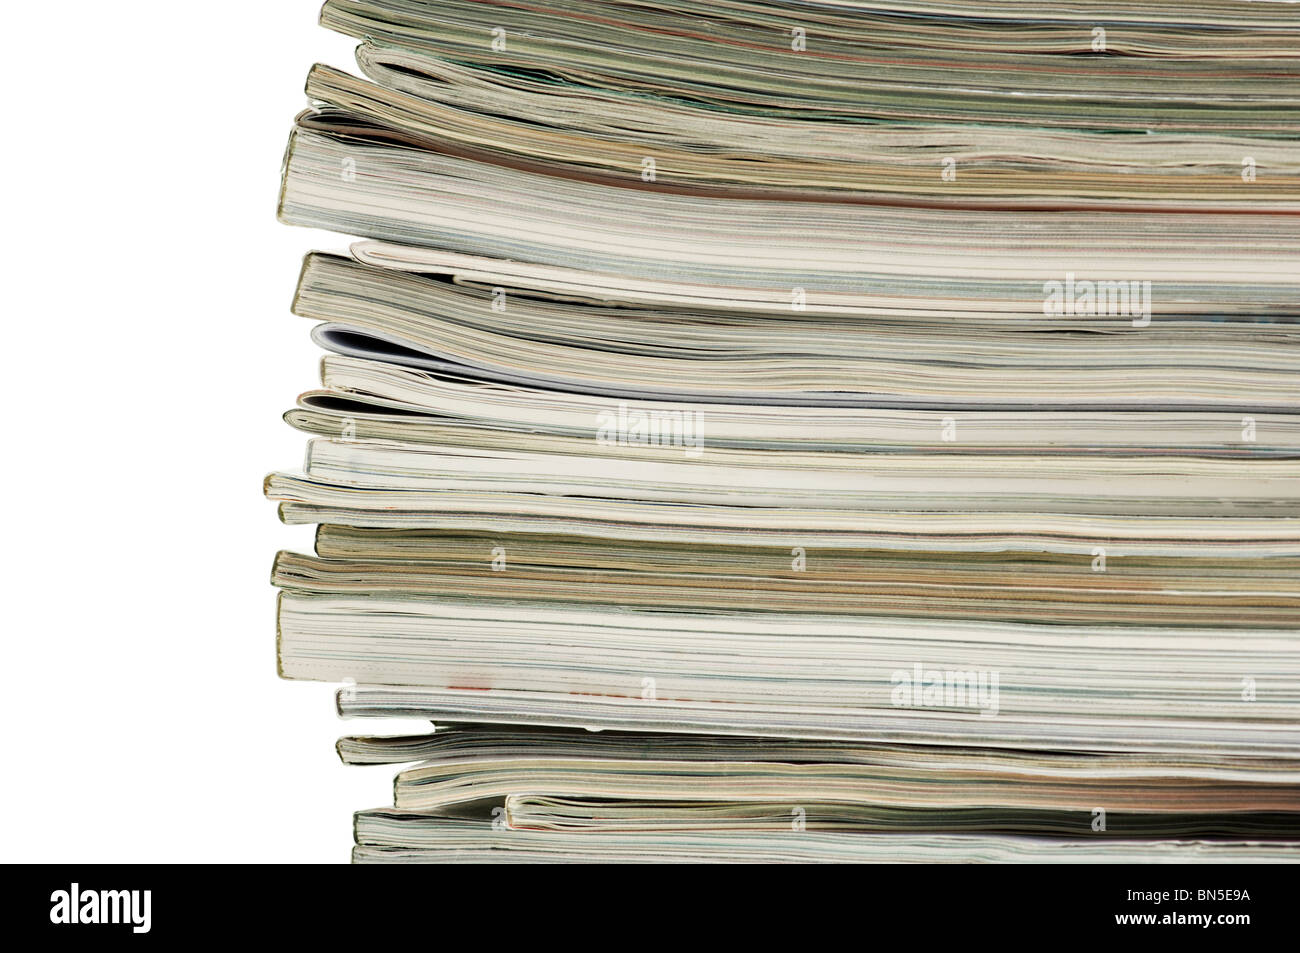 Horizontal image of the spine and ends of a stacked pile of magazines. - Stock Image